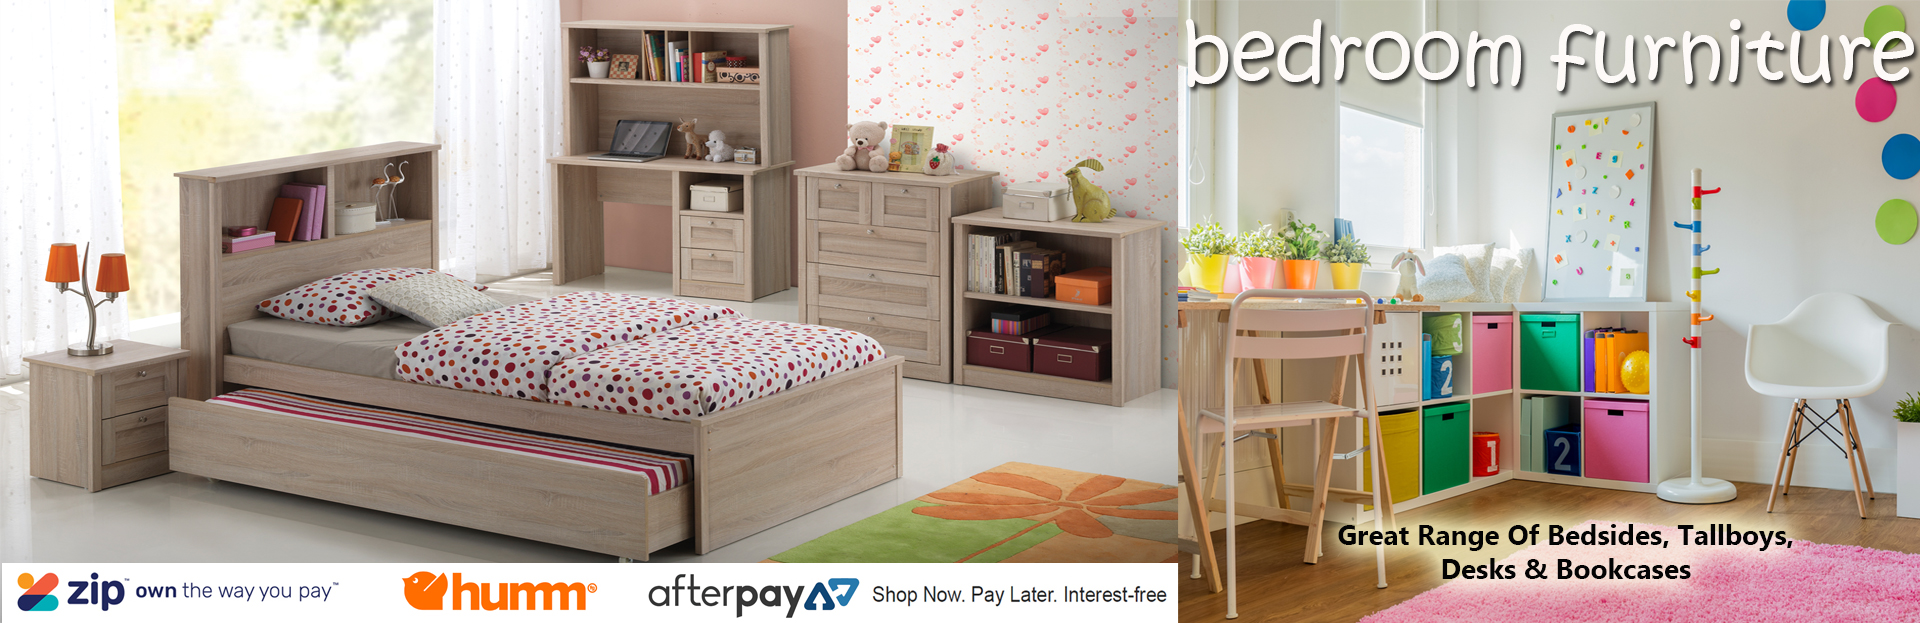 bedroom-furniture-banner-2019.jpg